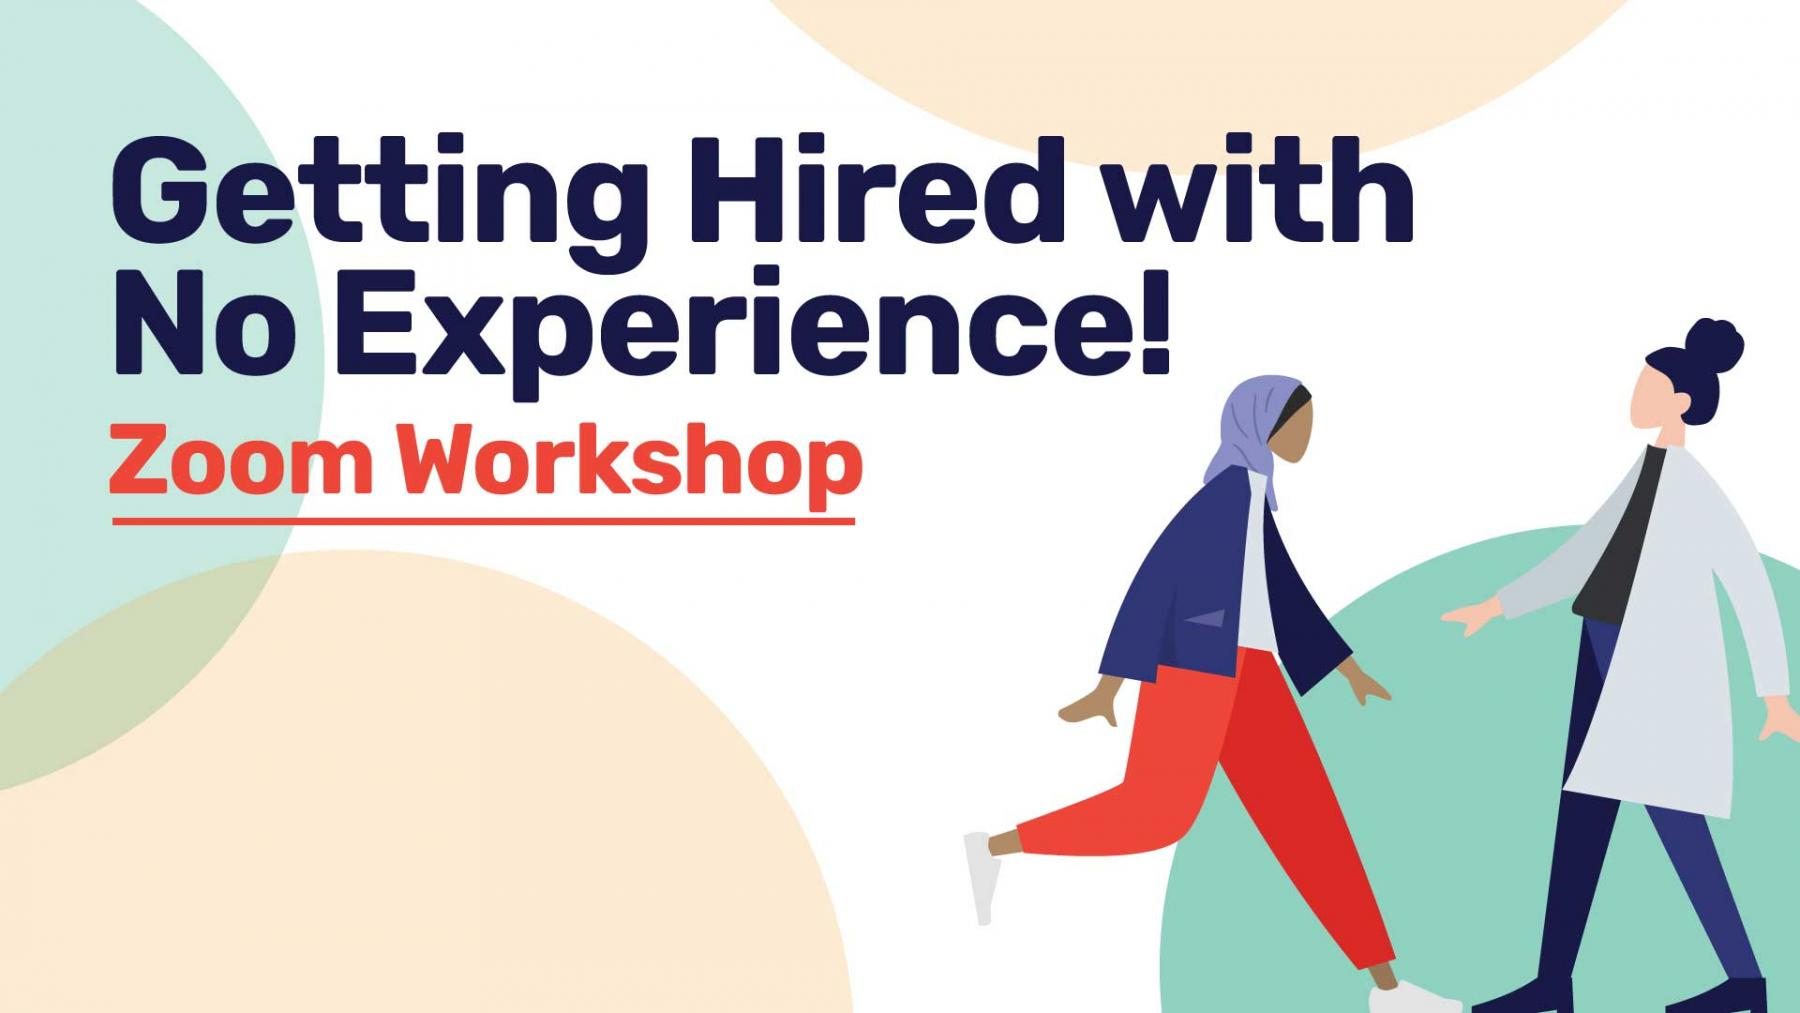 Zoom Workshop: Getting hired with no experience